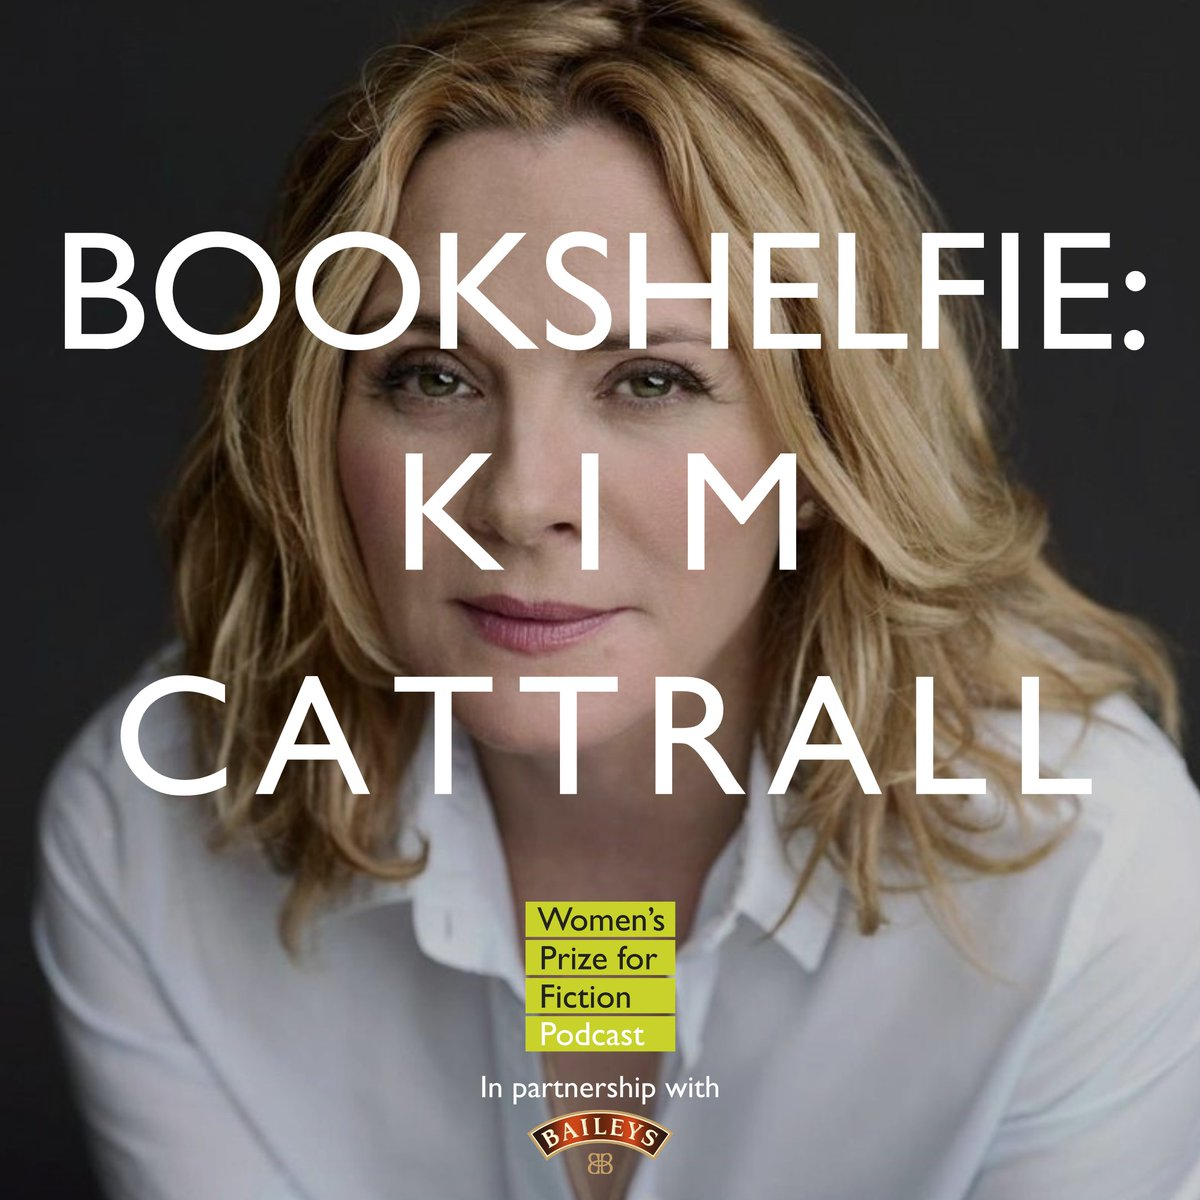 With all of the Sex and the City revival news swirling, we'd like to casually remind you of our podcast episode with the fantastic Kim Cattrall.  Kim chats about ageing, Hollywood and why she's unlikely to reprise her role as the infamous Samantha Jones: